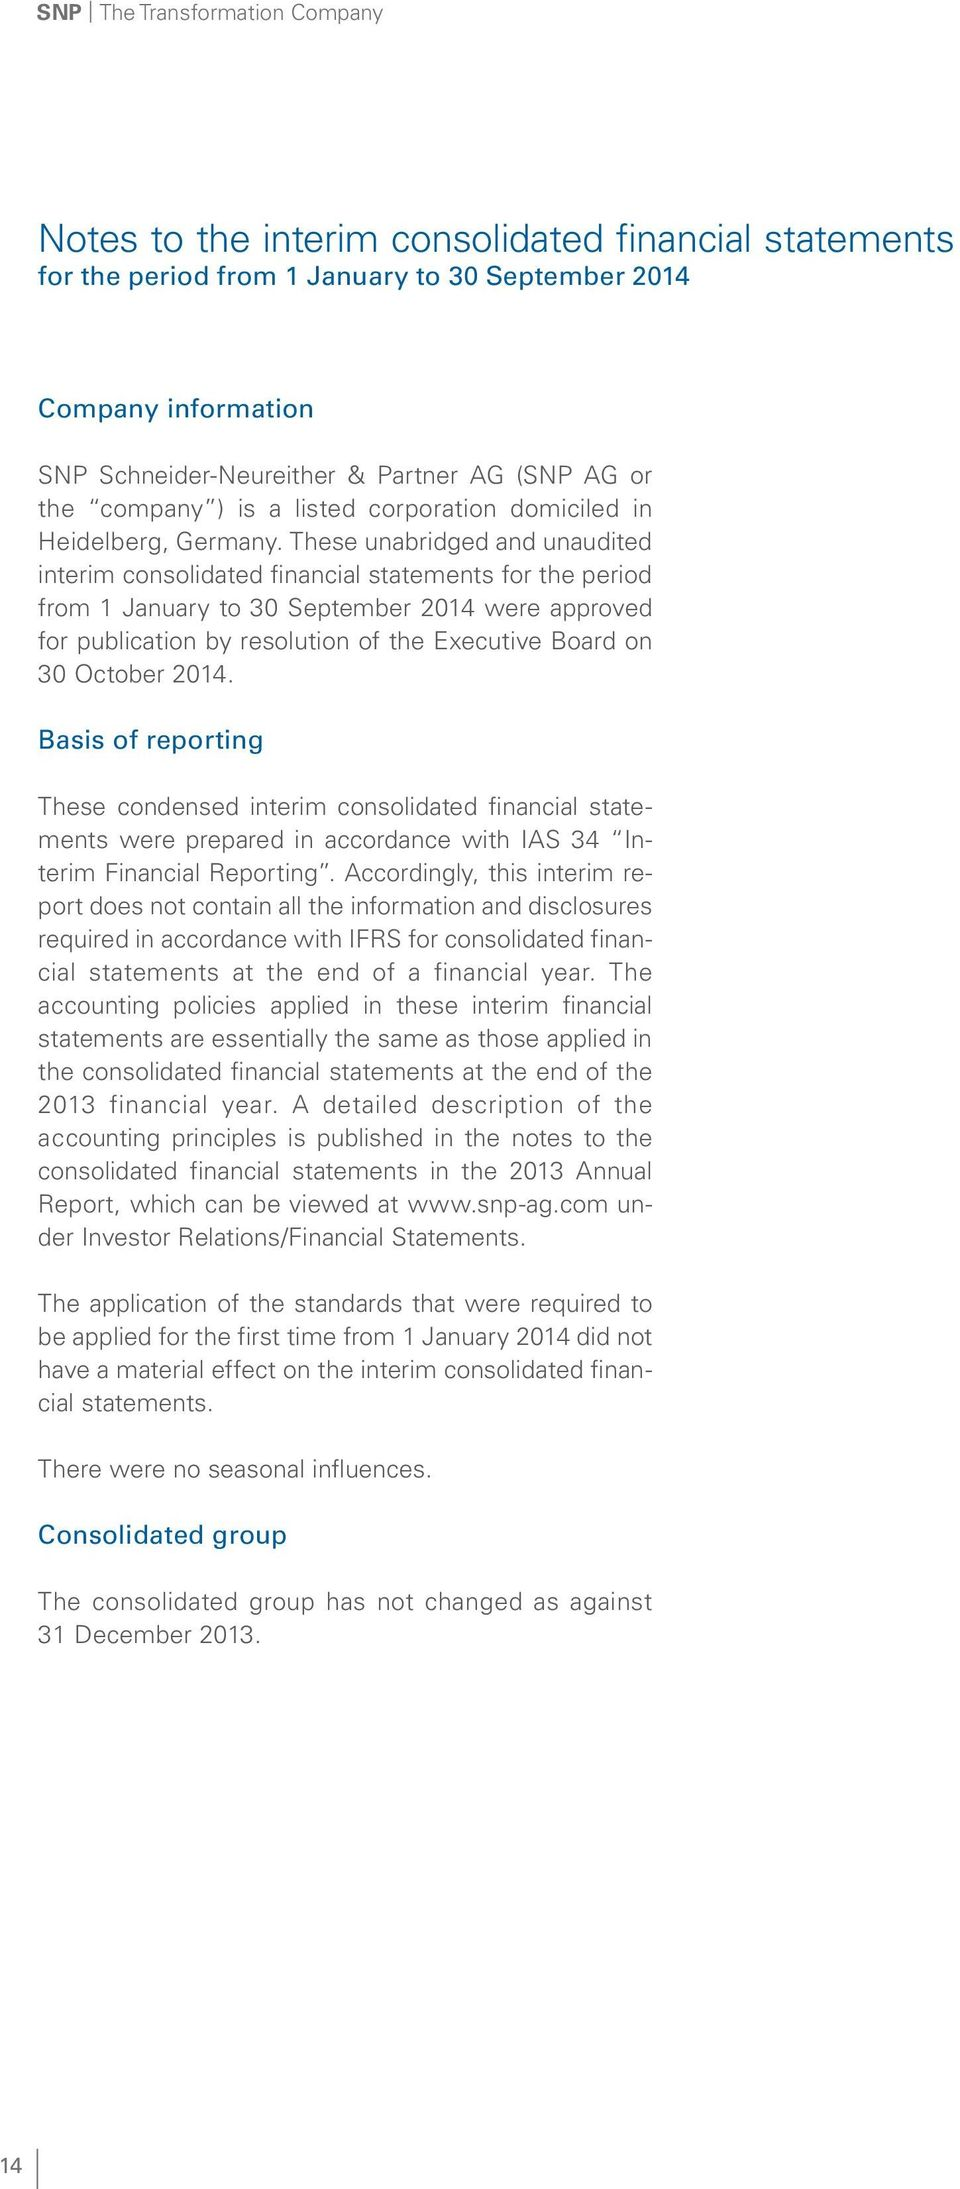 These unabridged and unaudited interim consolidated financial statements for the period from 1 January to 30 September 2014 were approved for publication by resolution of the Executive Board on 30